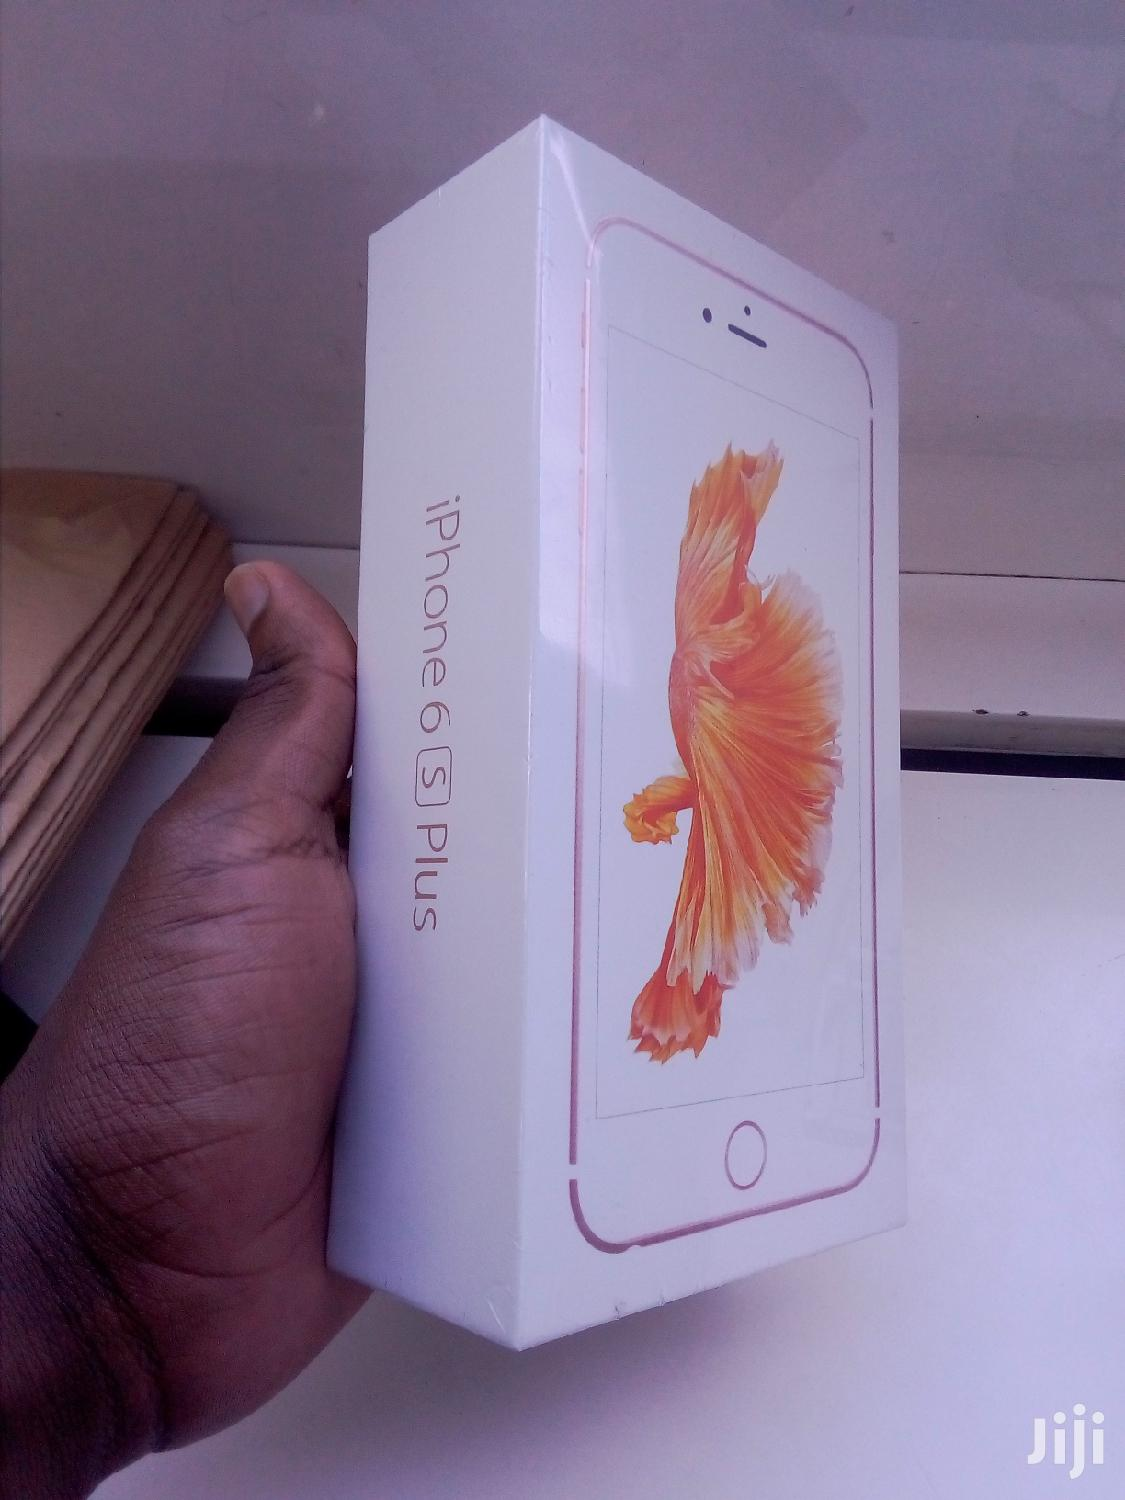 New Apple iPhone 6 Plus 128 GB | Mobile Phones for sale in Nairobi Central, Nairobi, Kenya